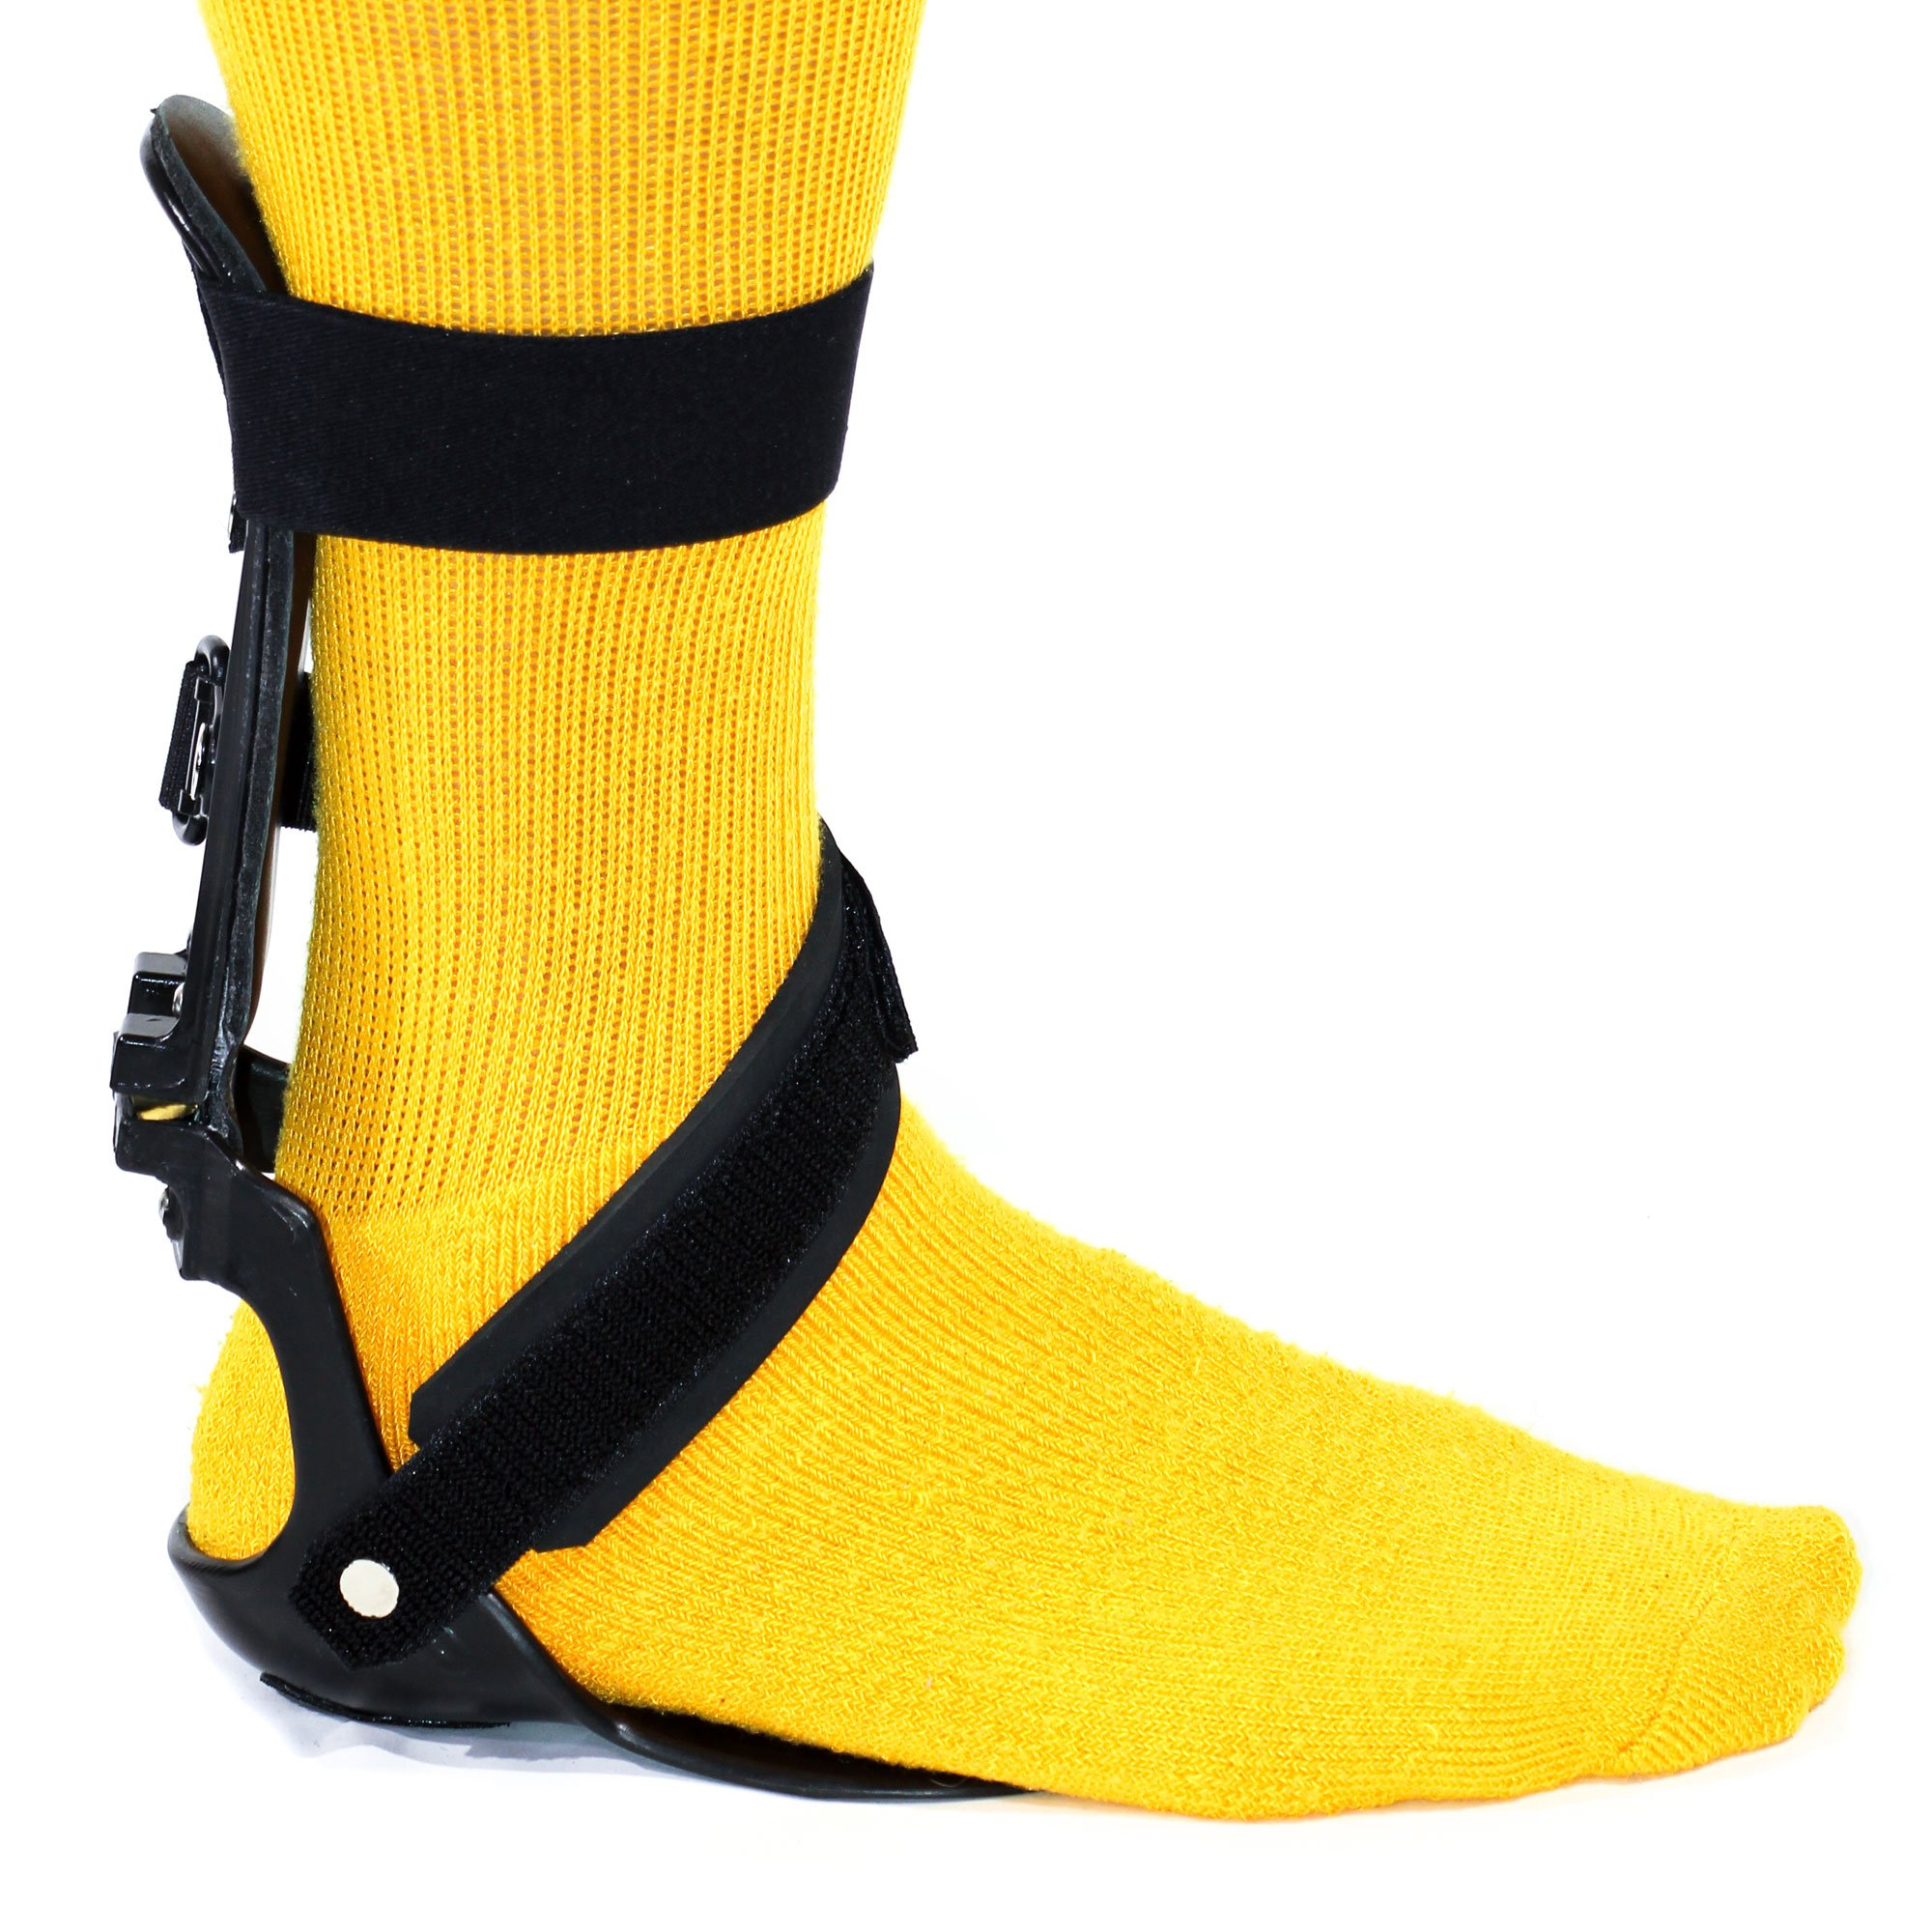 Insightful Products Step-Smart Drop Foot Brace (Right Foot - Small/Medium) by Step-Smart